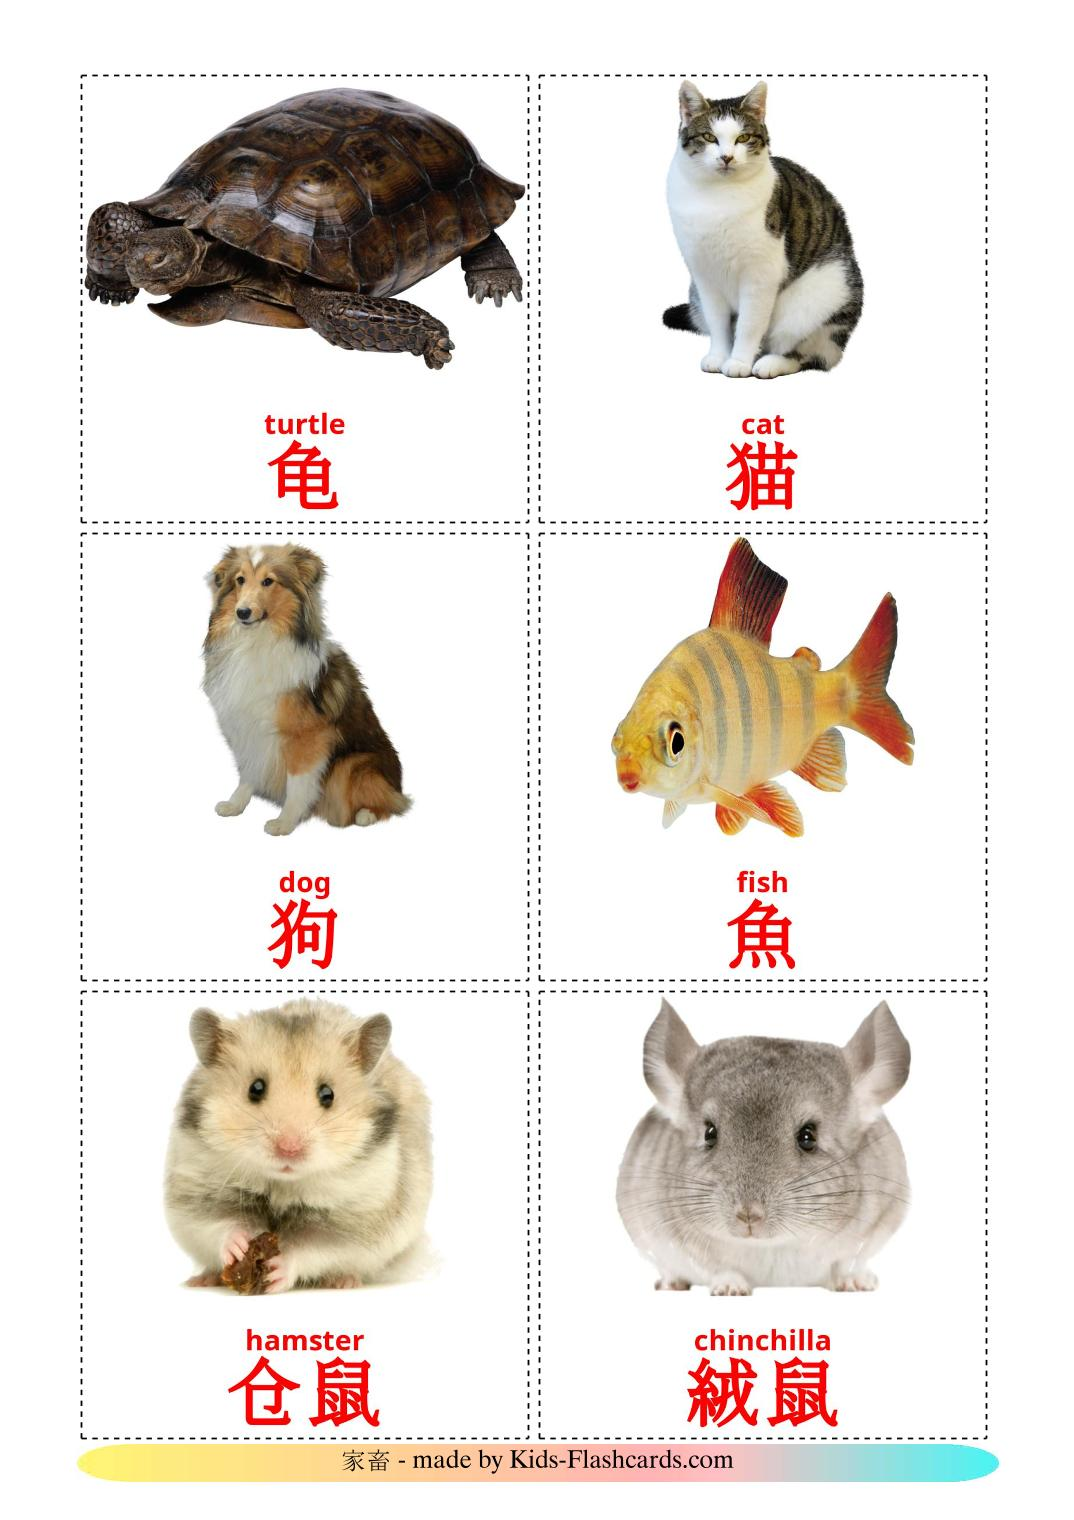 Domestic animals - 10 Free Printable chinese(Traditional) Flashcards